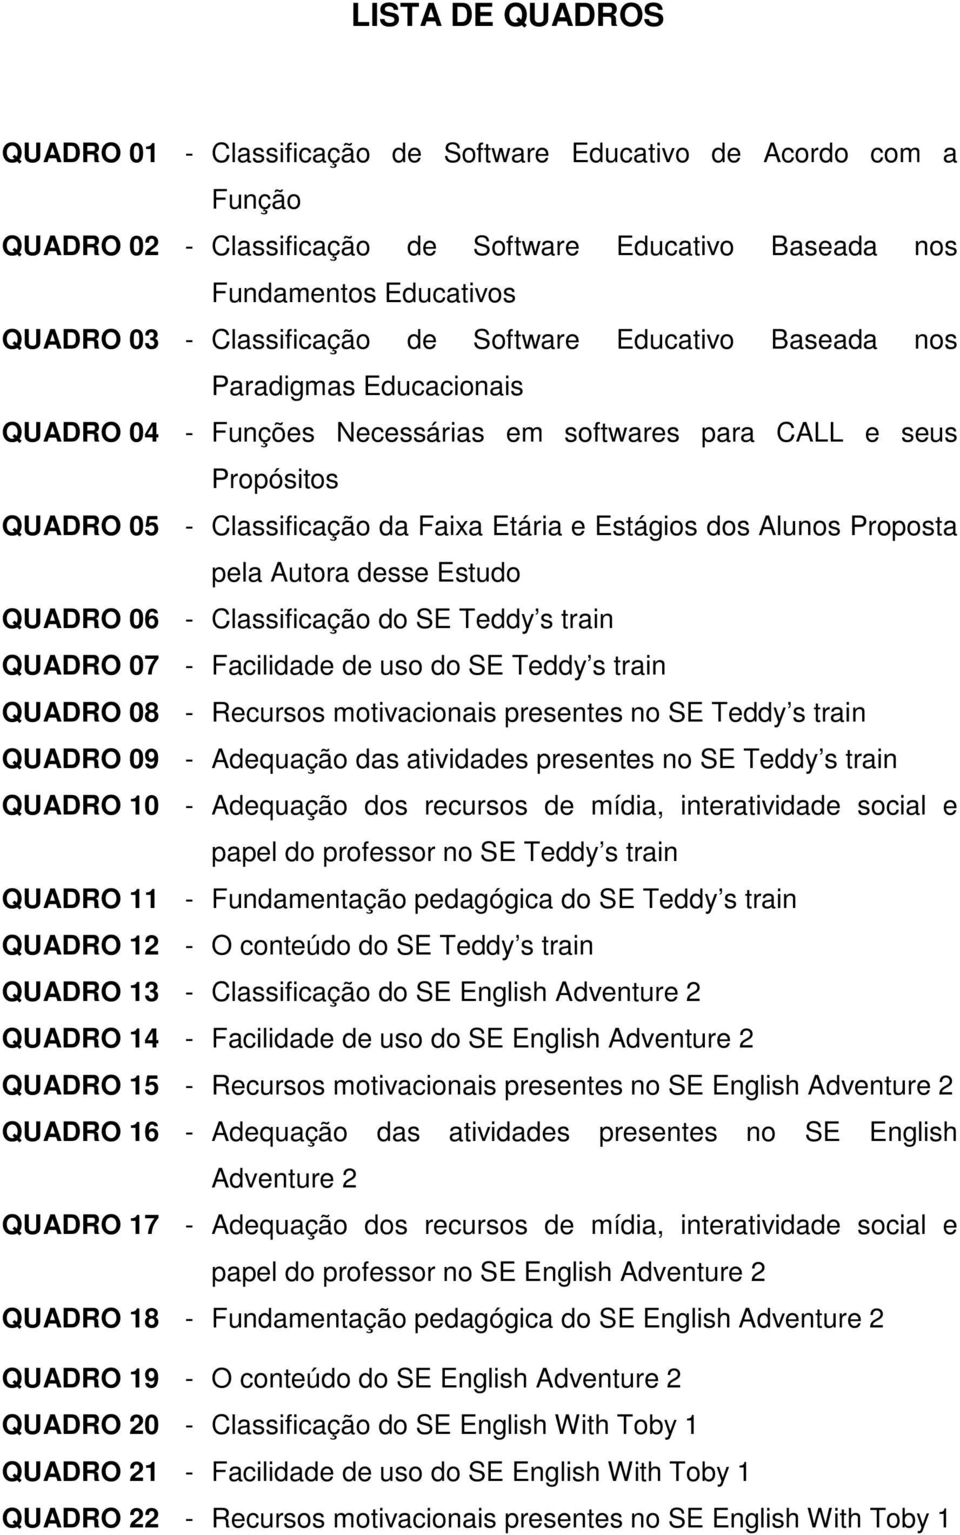 Proposta pela Autora desse Estudo QUADRO 06 - Classificação do SE Teddy s train QUADRO 07 - Facilidade de uso do SE Teddy s train QUADRO 08 - Recursos motivacionais presentes no SE Teddy s train